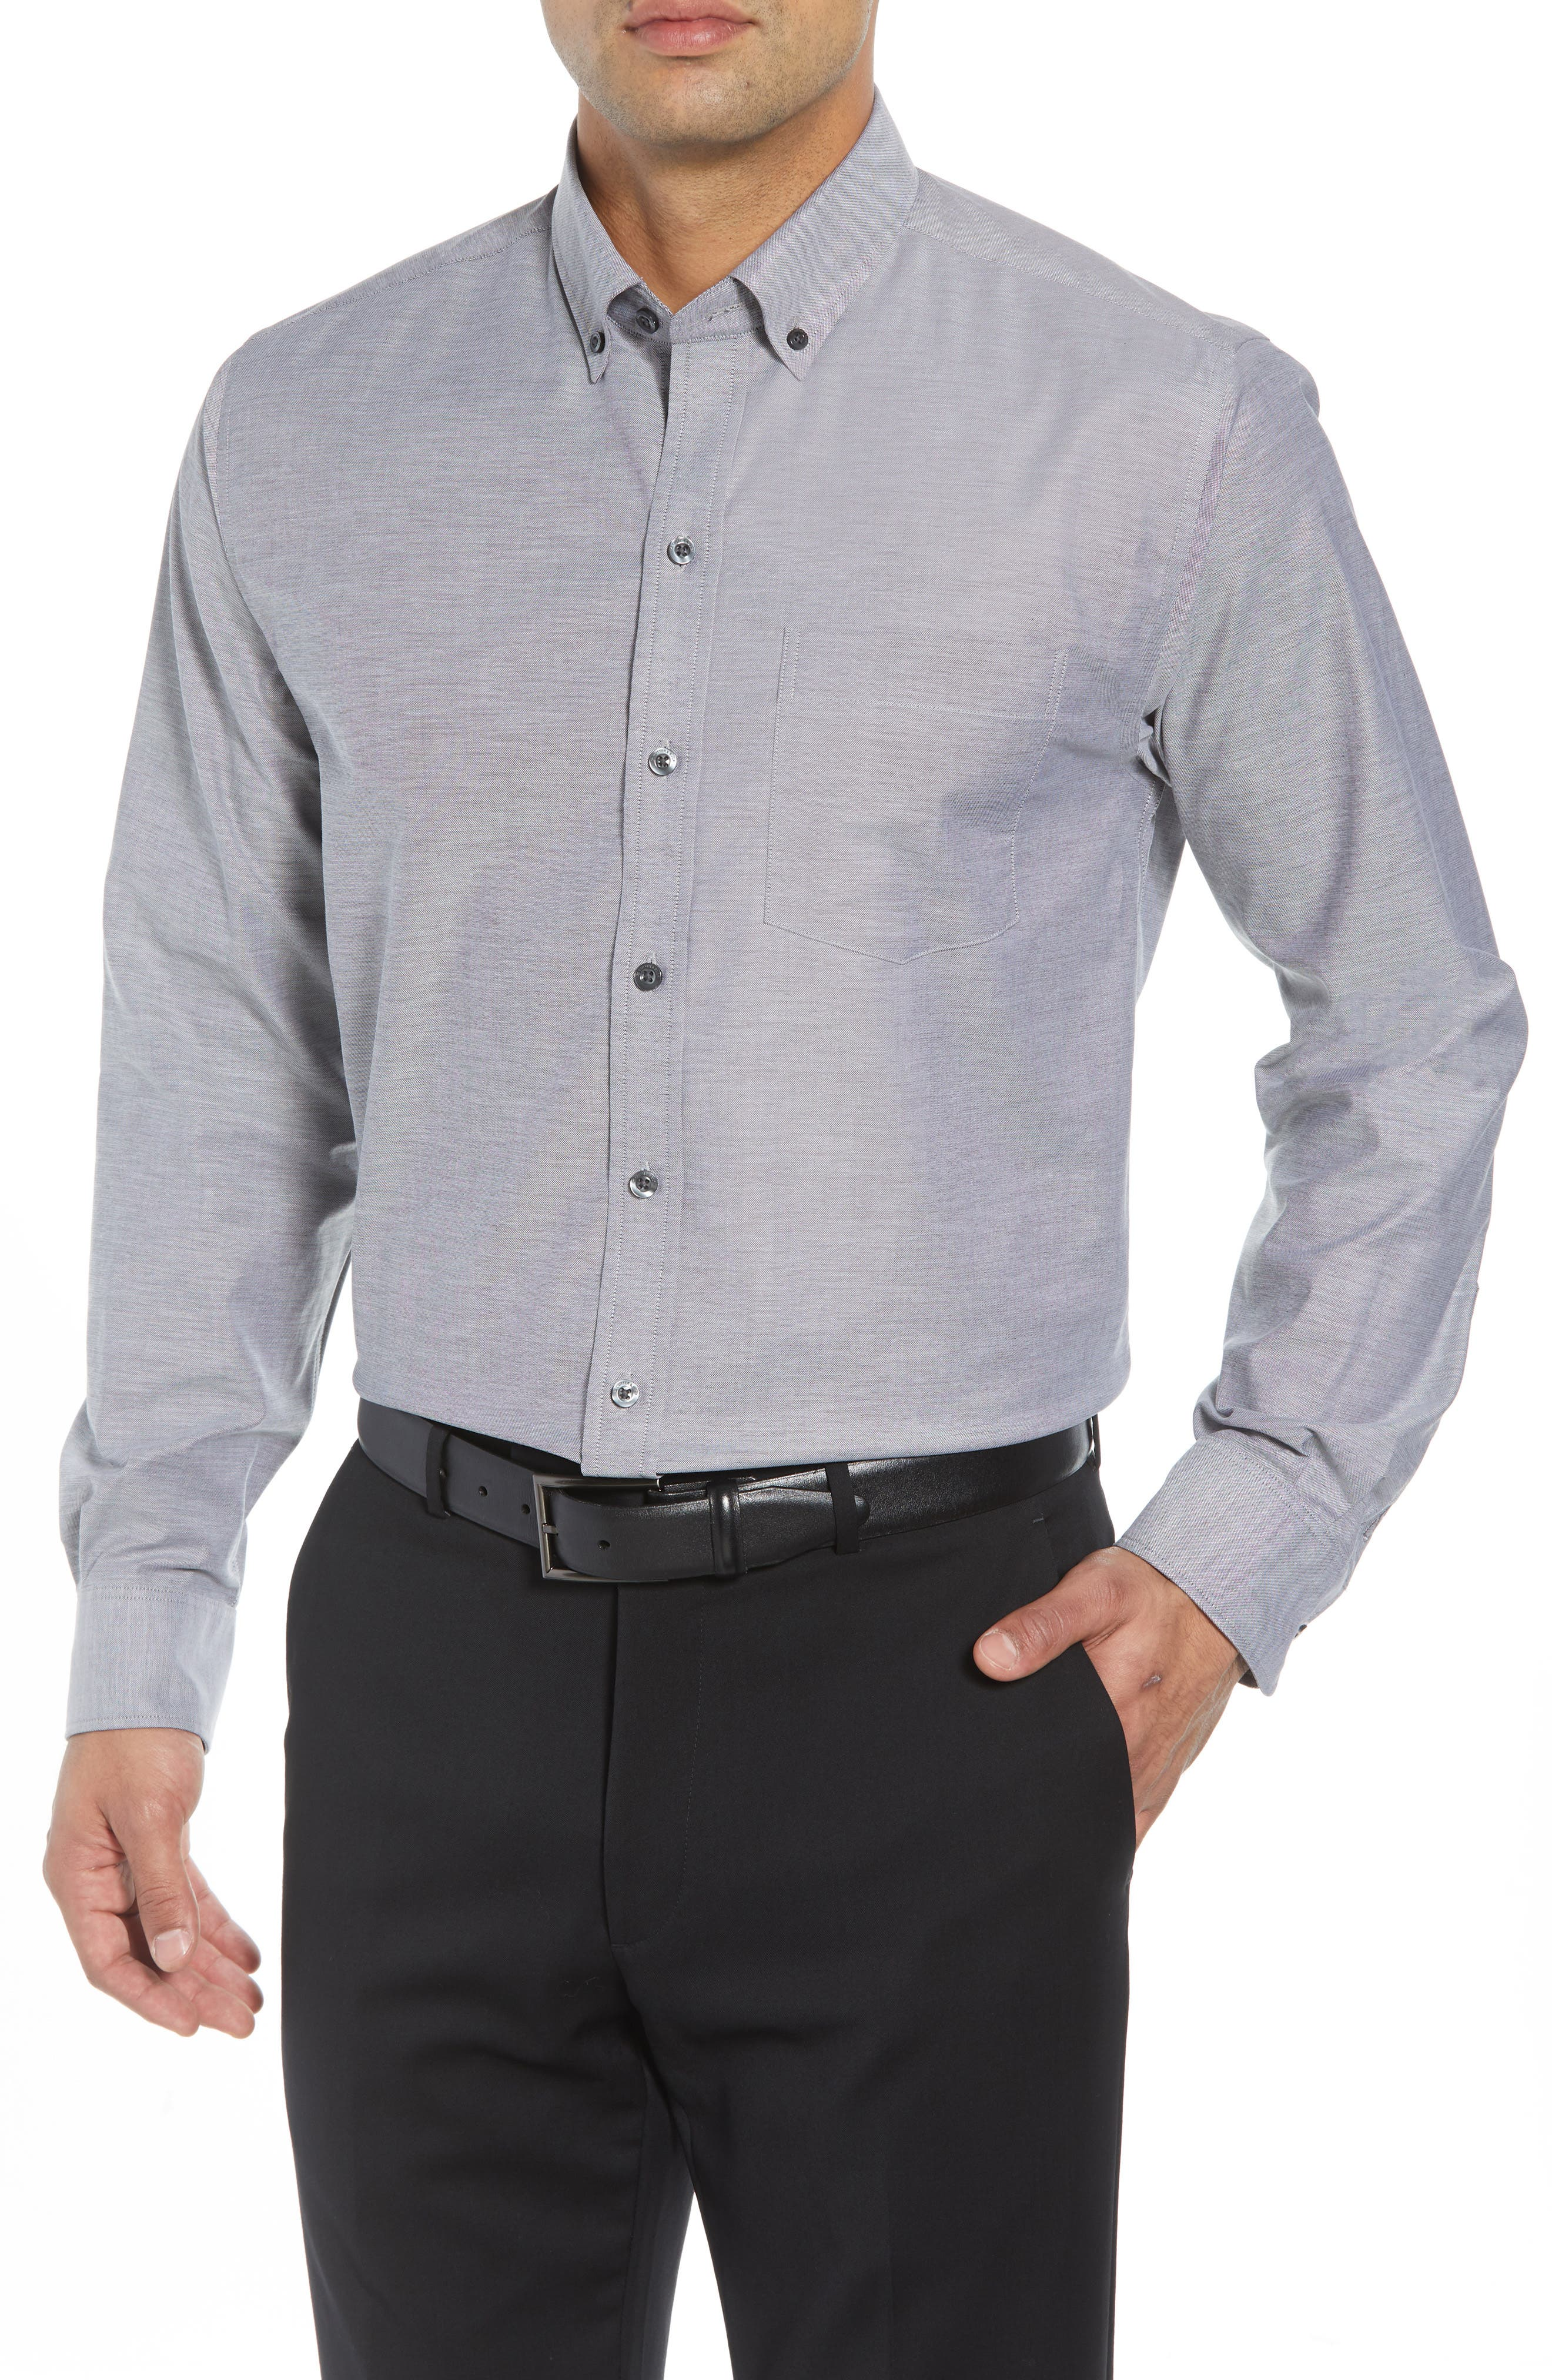 Tailor Regular Fit Oxford Sport Shirt,                         Main,                         color, CHARCOAL 2